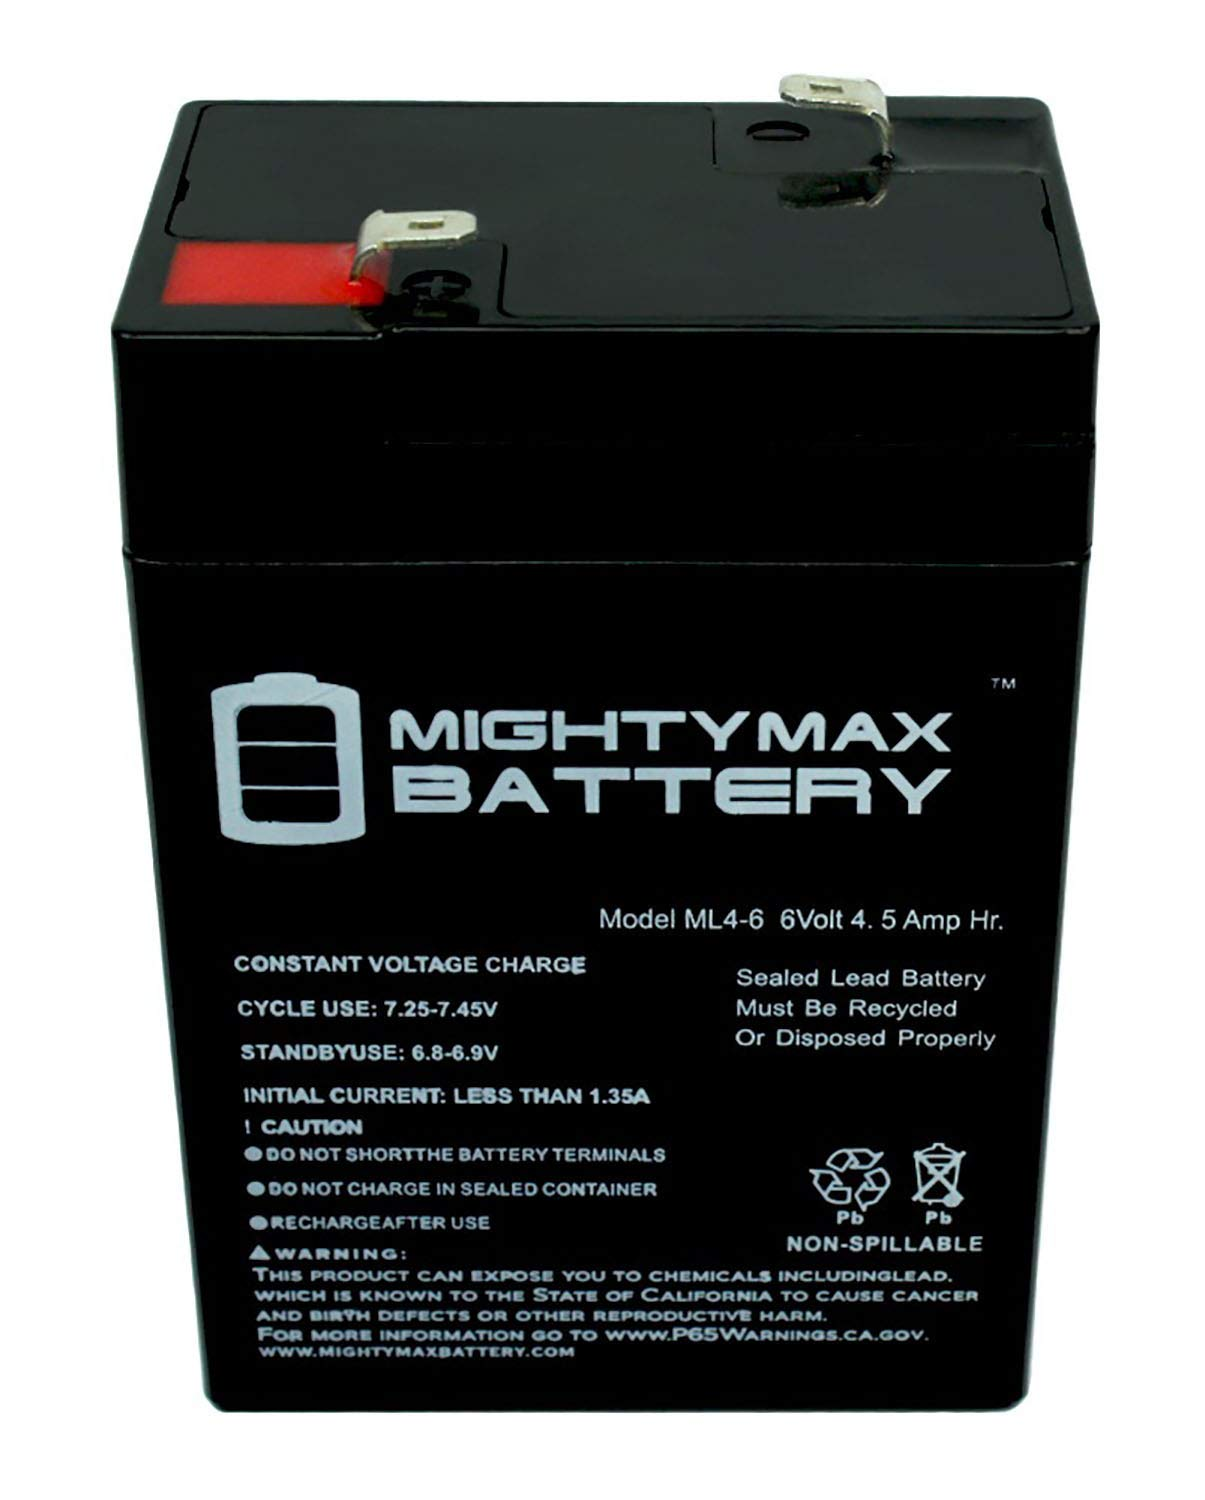 Mighty Max Battery 6V 4.5AH SLA Battery Replaces Power Patrol SLA0905, SLA090-10 Pack Brand Product by Mighty Max Battery (Image #3)